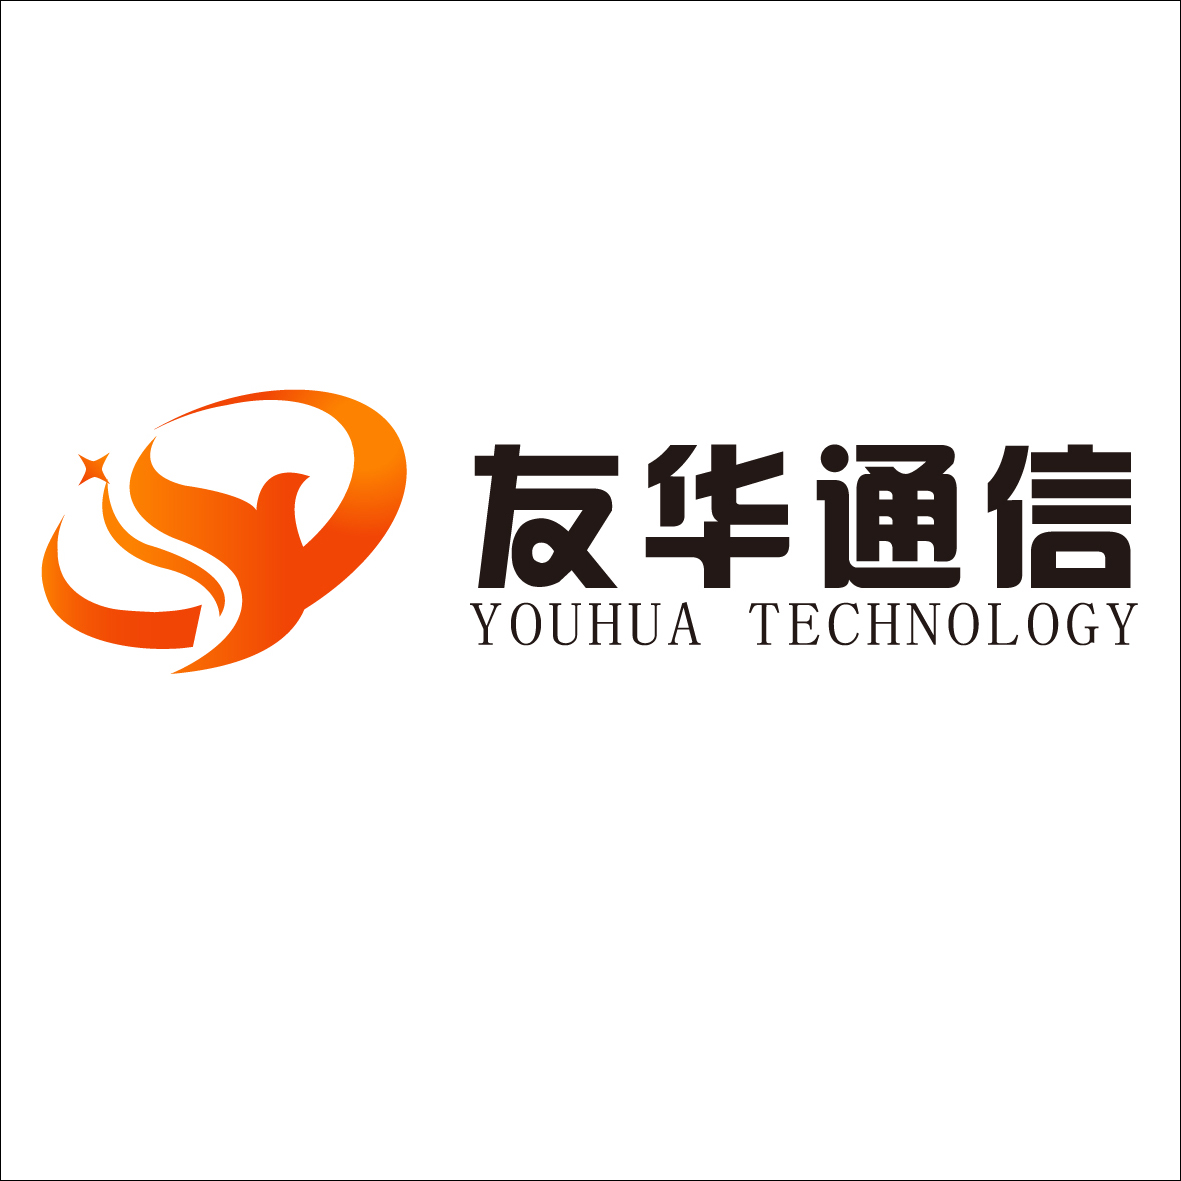 Shenzhen Youhua Technology Co., Ltd.